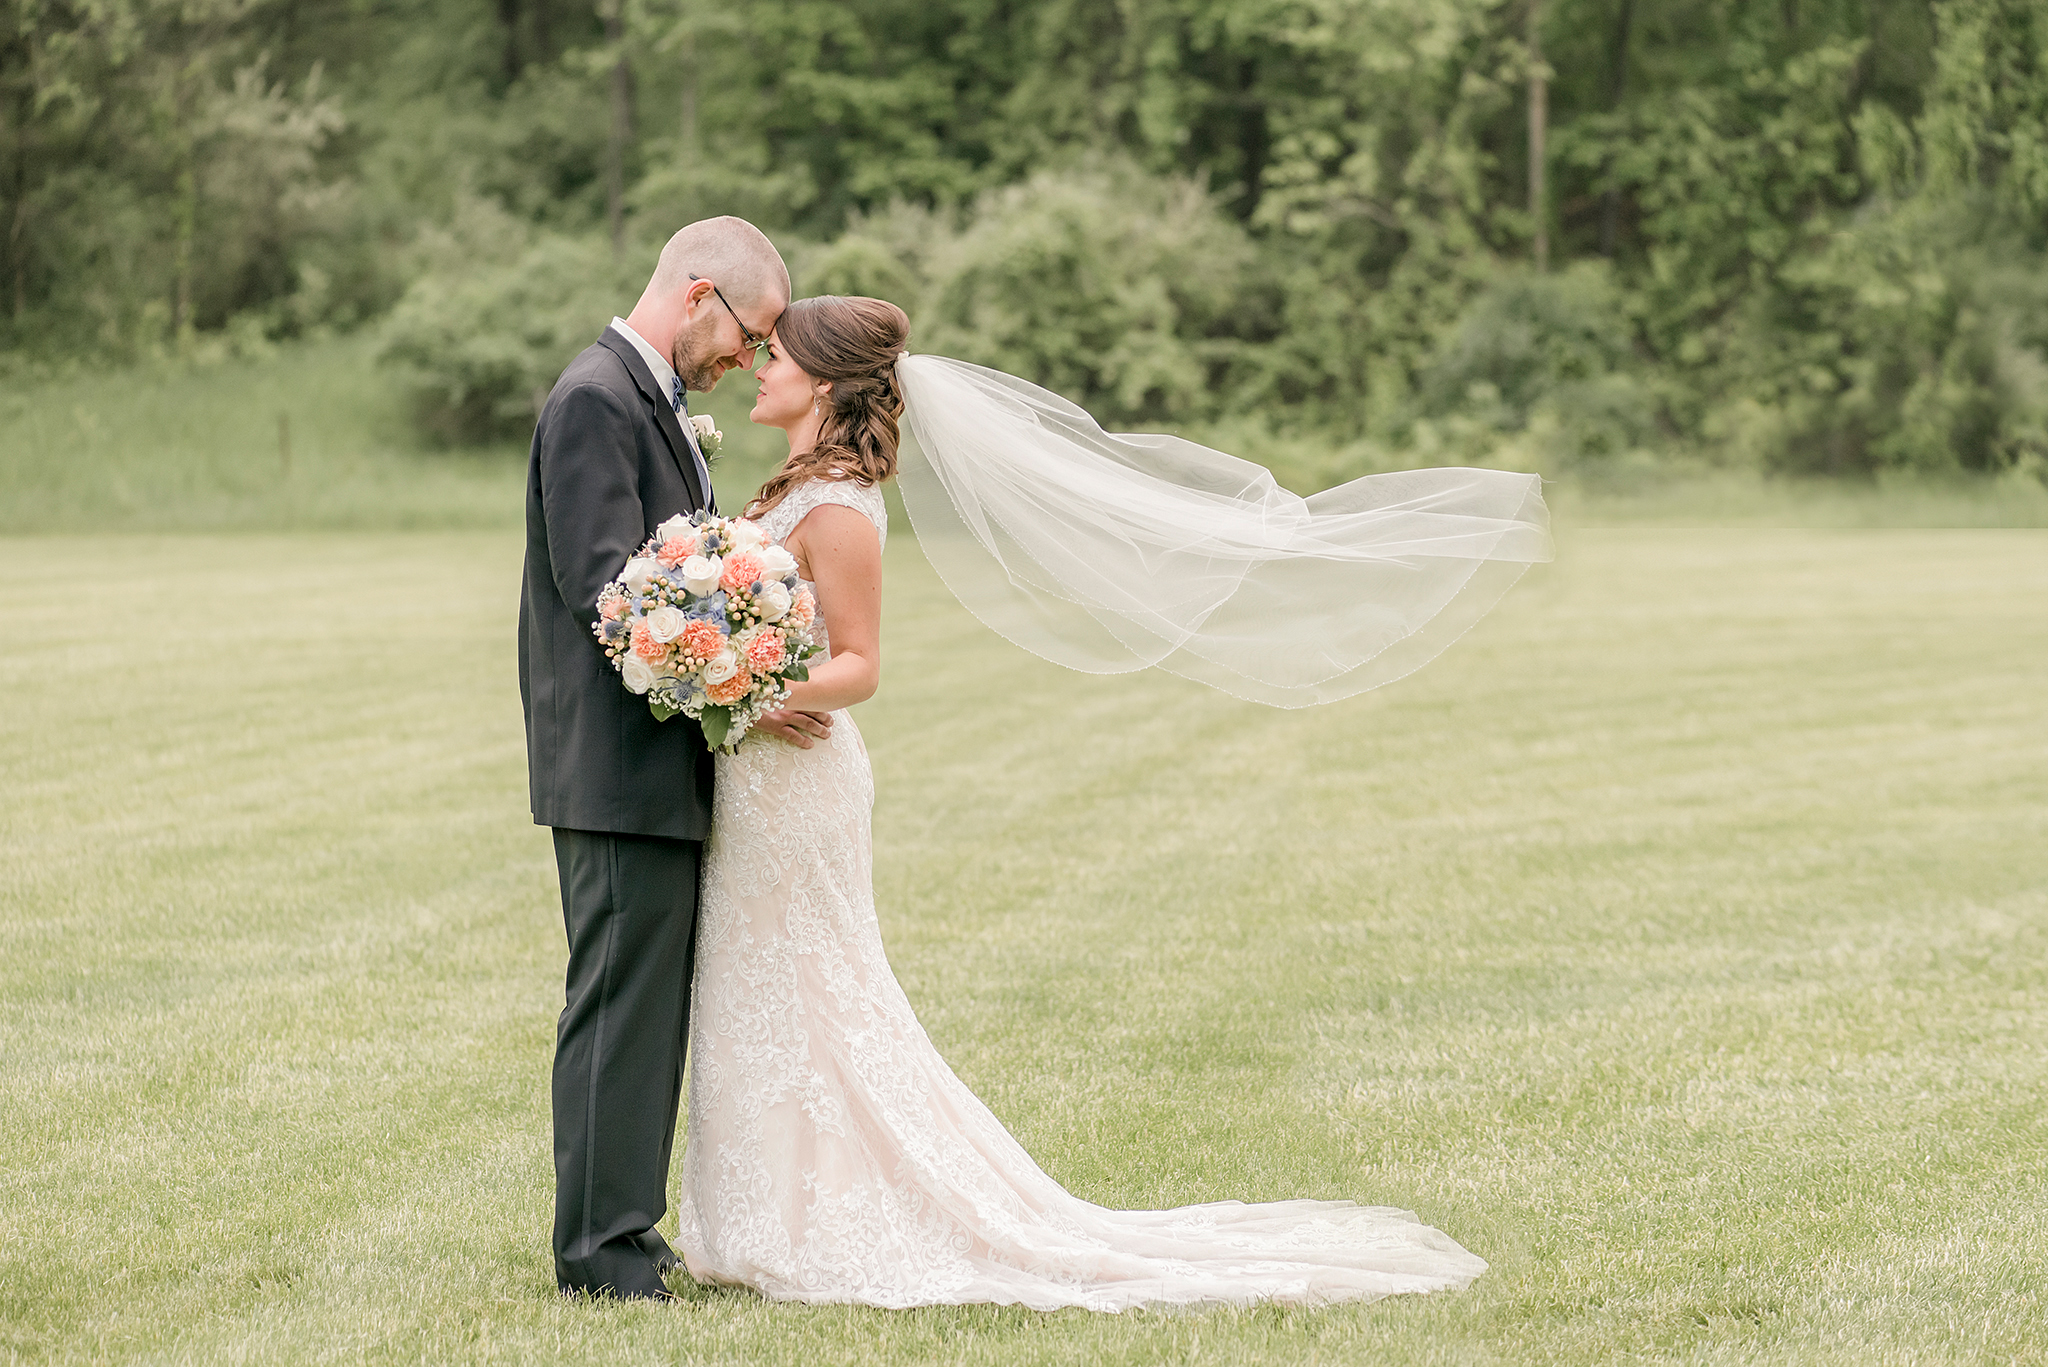 Lindsay-Adkins-Photography-Michigan-Wedding-Photographer-Sauk-Valley-Brooklyn-Michigan39